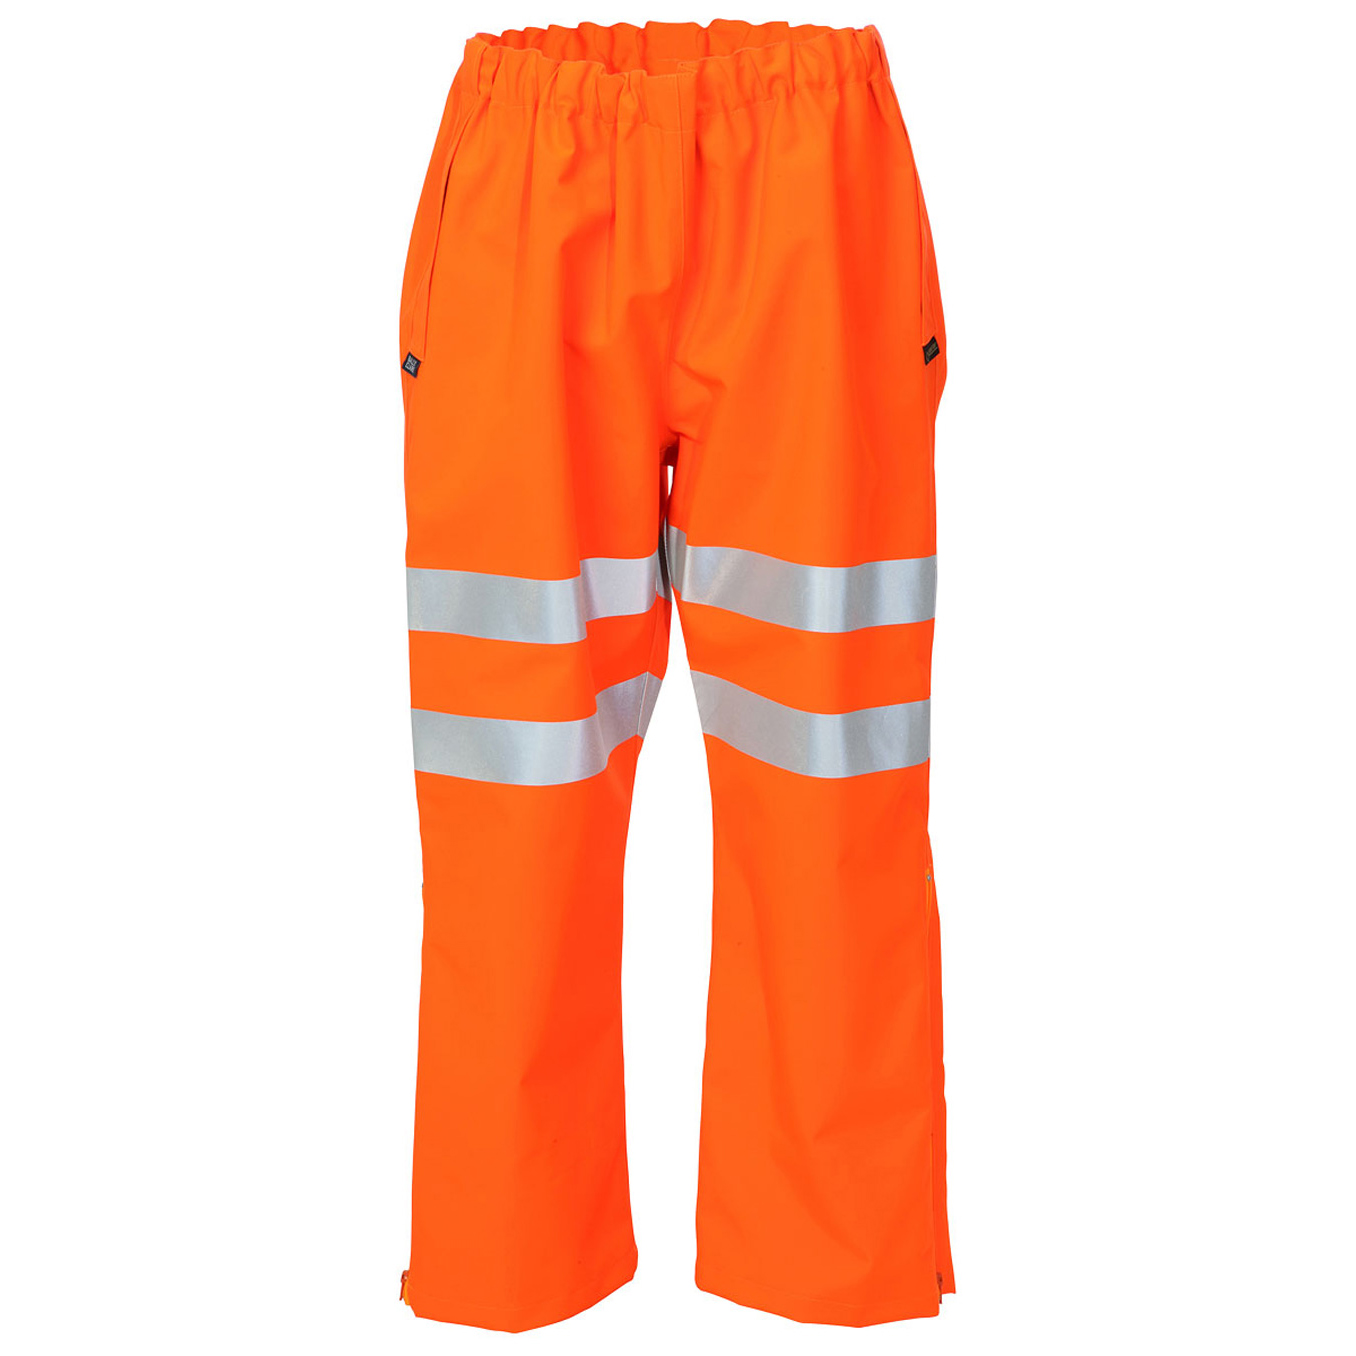 Body Protection B-Seen Gore-Tex Over Trousers Foul Weather XL Orange Ref GTHV160ORXL *Up to 3 Day Leadtime*